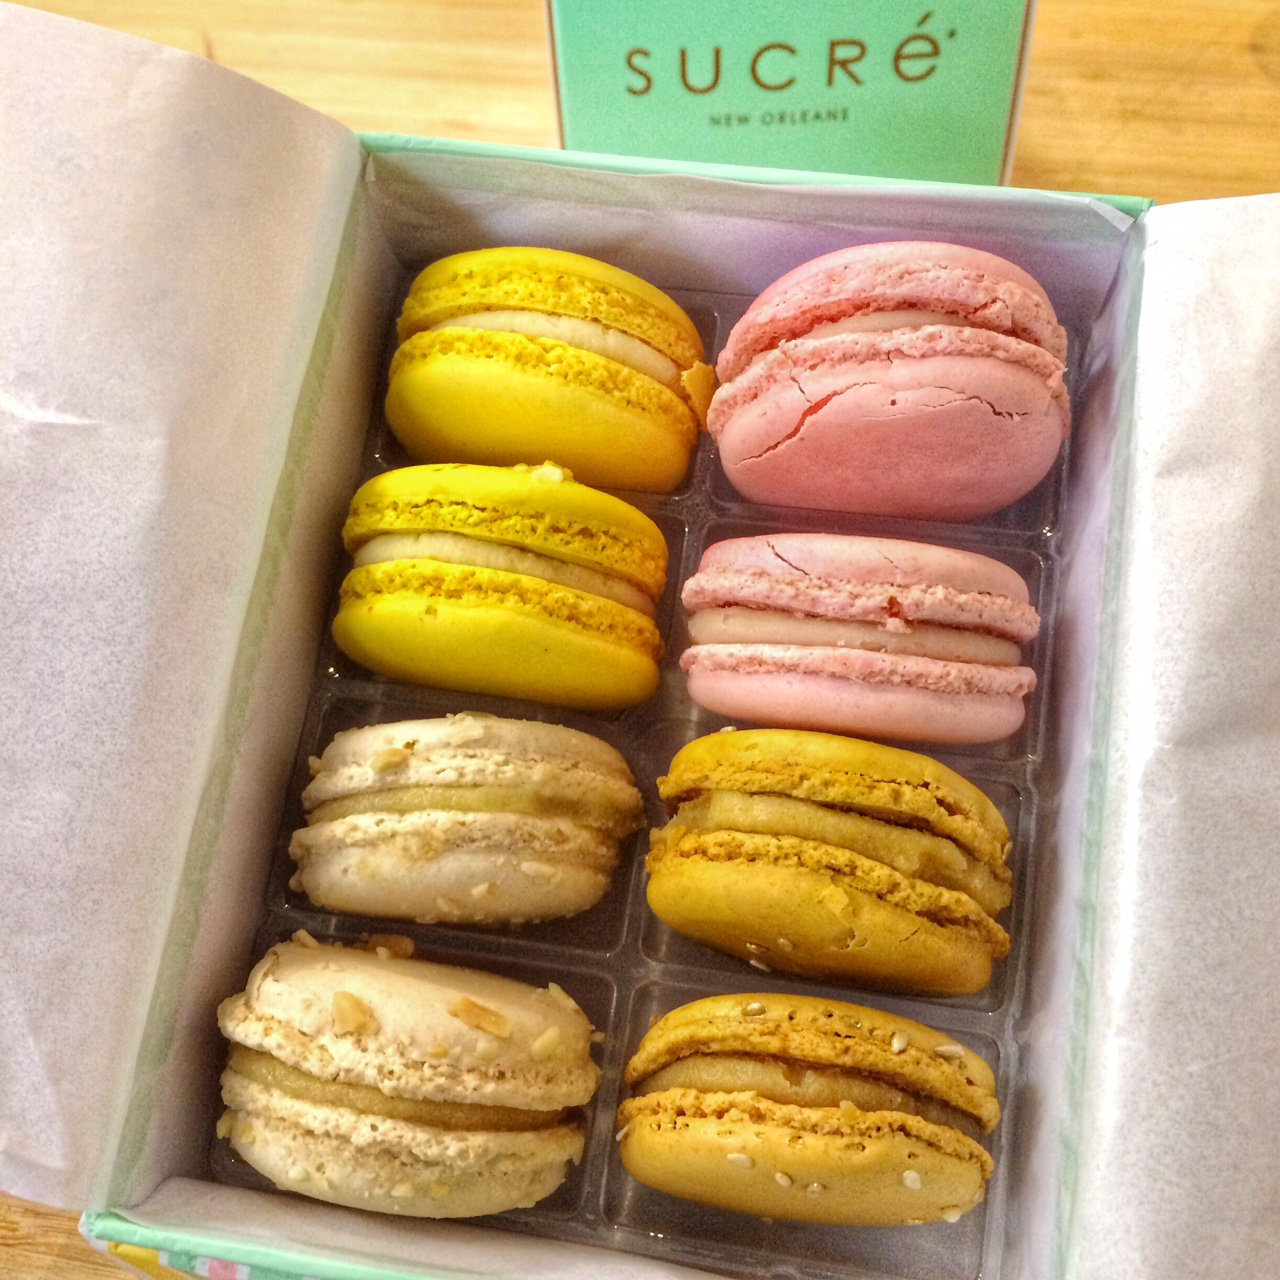 New Orleans Sucre Macarons Box